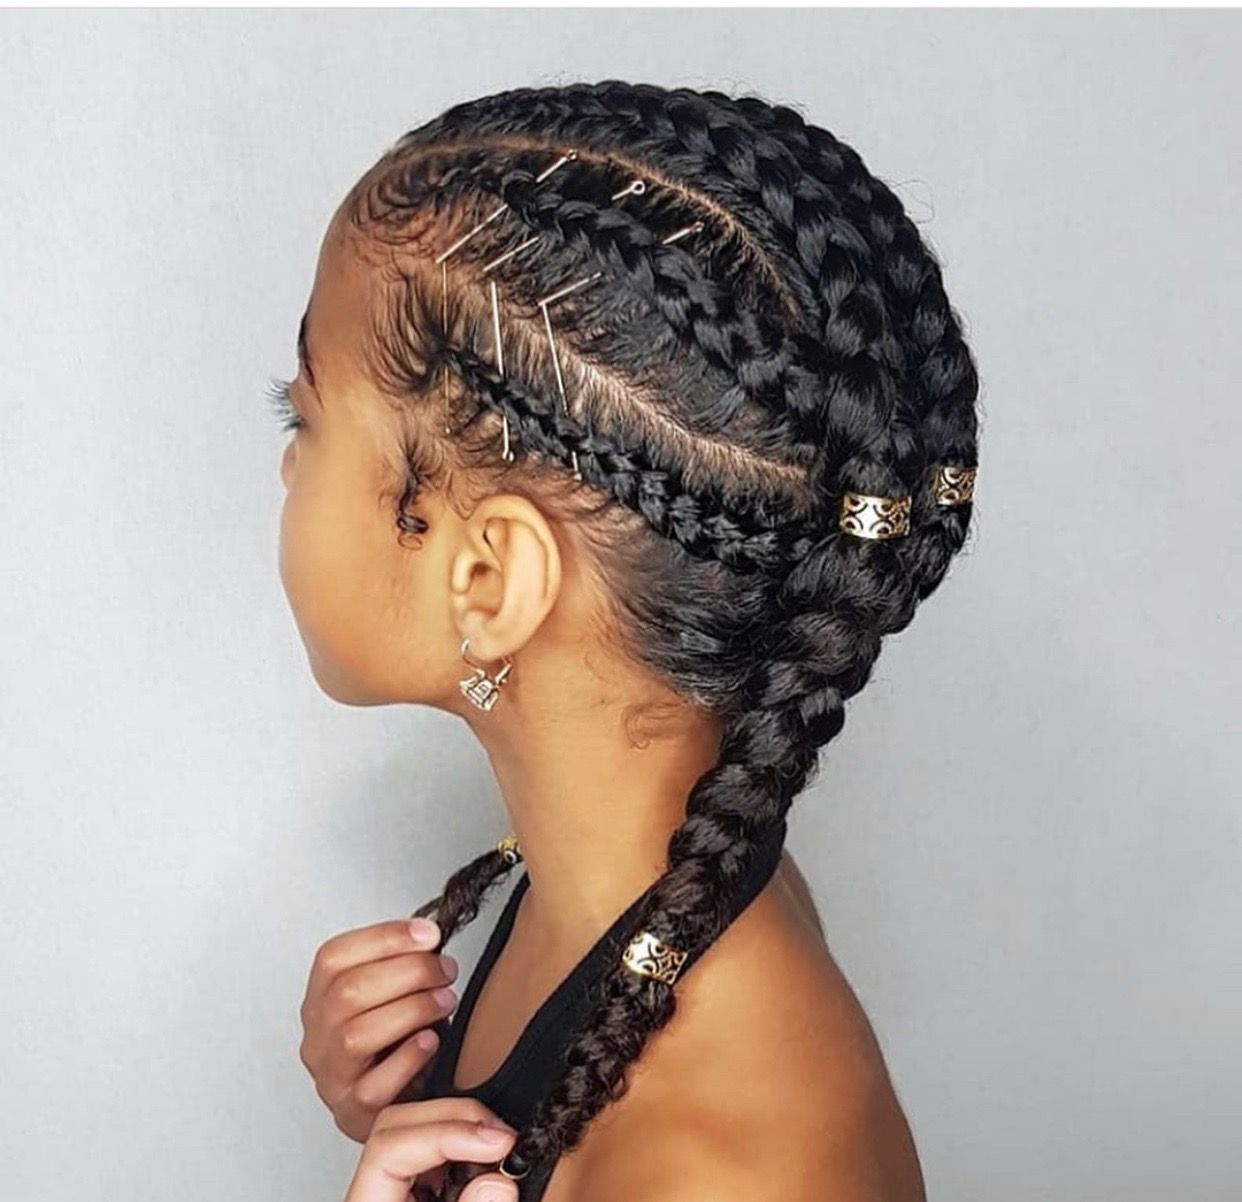 Kids Natural Hairstyles We Can Match Someday Very Soon Natural Hair Styles Kids Hairstyles Cornrow Hairstyles